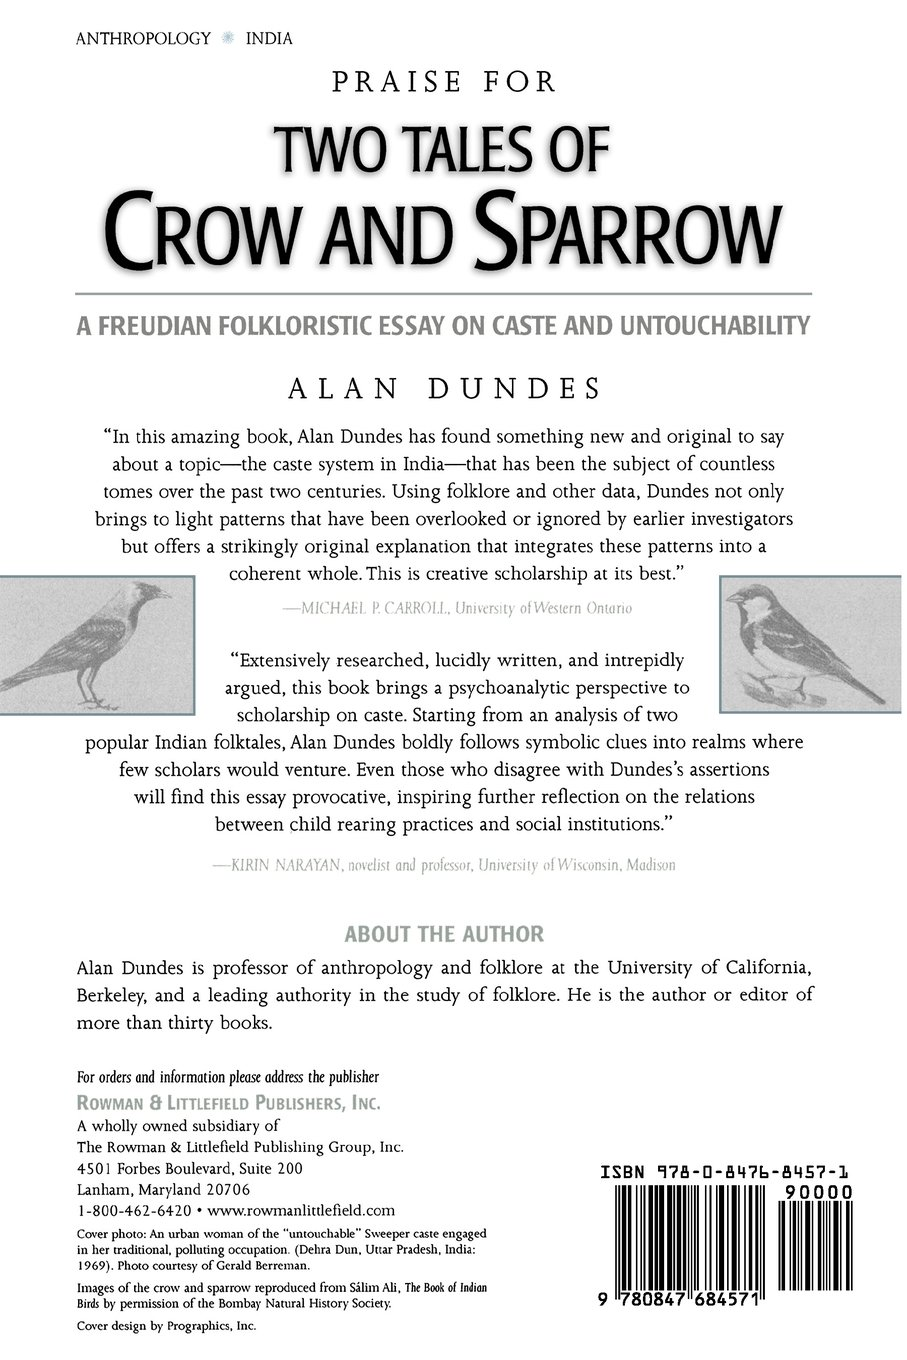 two tales of crow and sparrow a freudian folkloristic essay on two tales of crow and sparrow a freudian folkloristic essay on caste and untouchability amazon co uk alan dundes 9780847684571 books